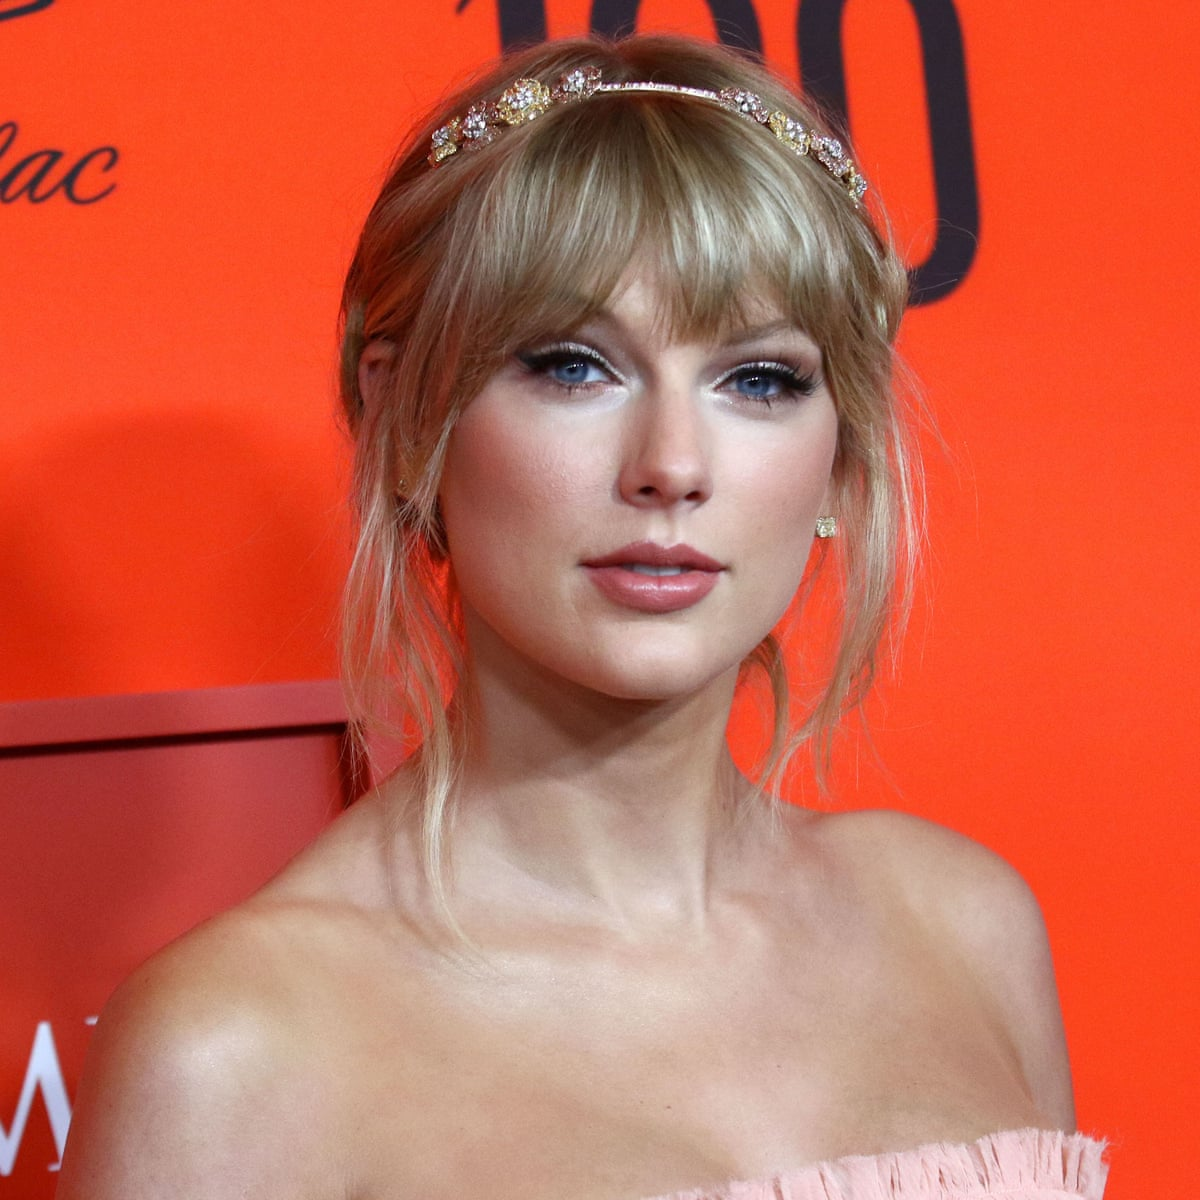 Taylor Swift's Re-Recorded Albums Will Be Eligible for Grammy Nominations - Taylor Swift F